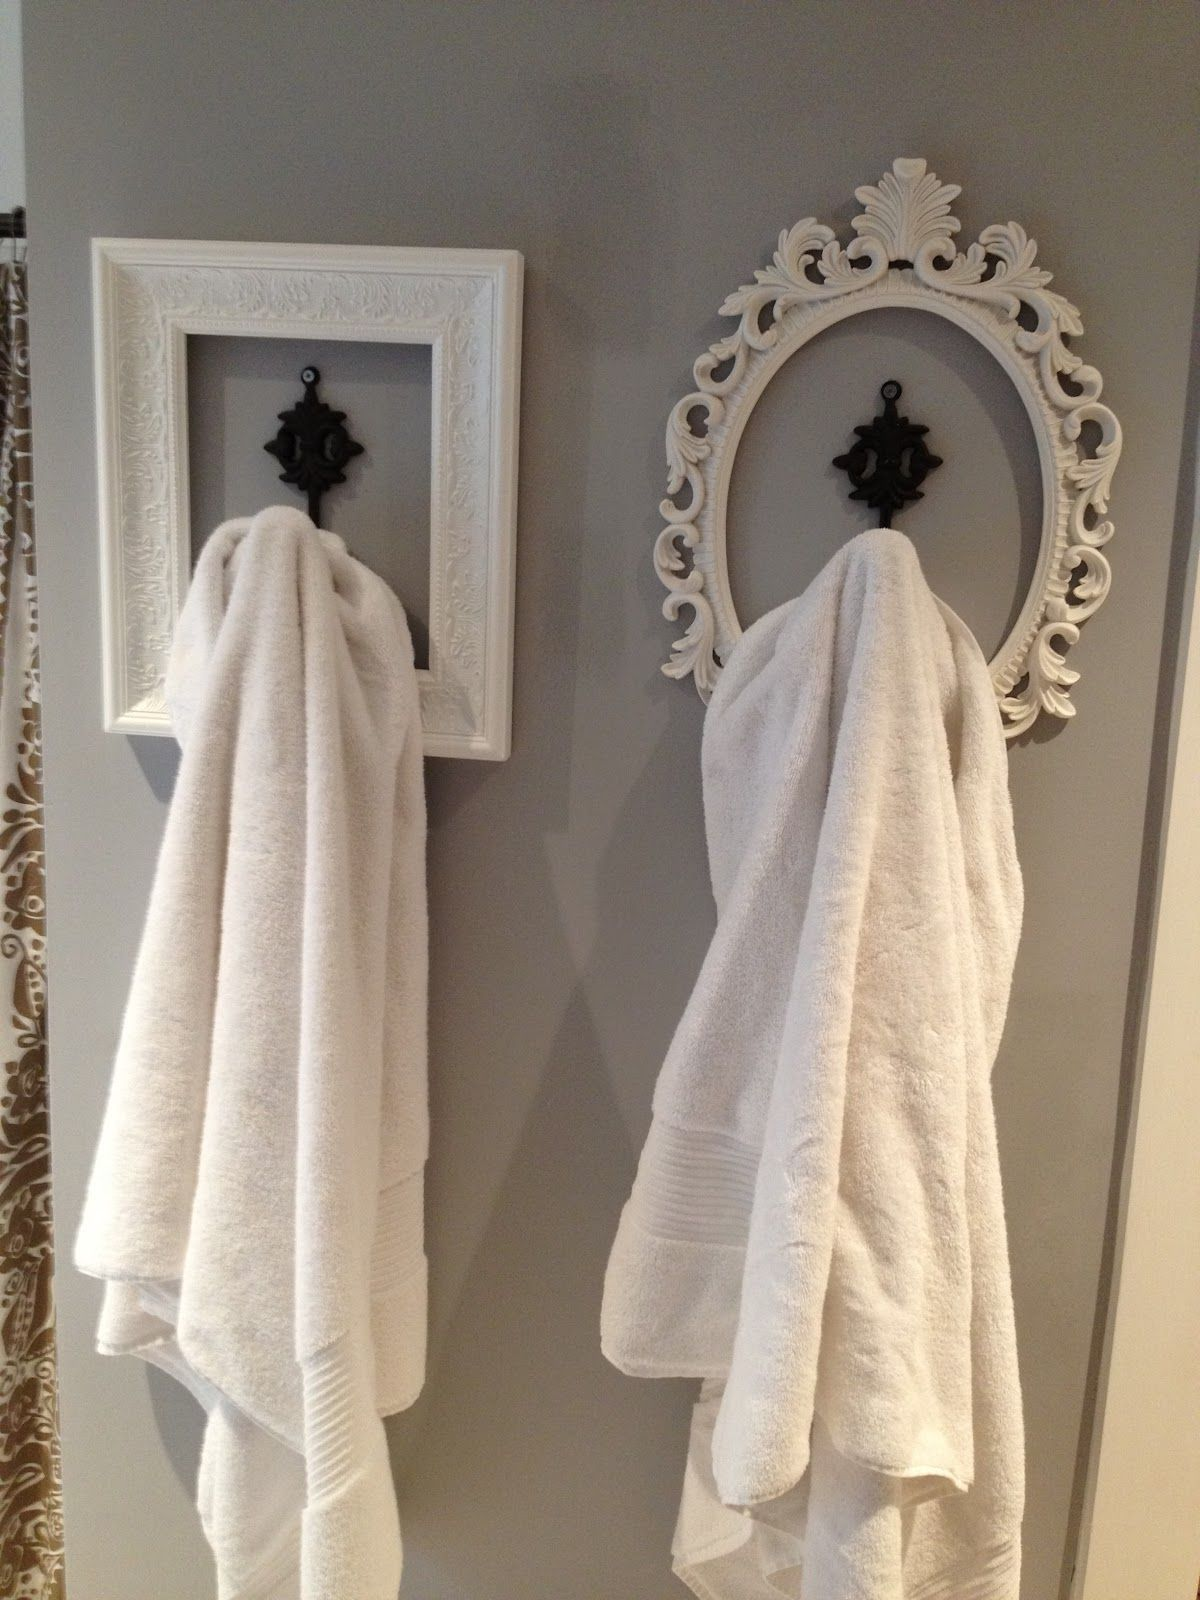 Hanging Decorative Towels In Bathroom - Perfect look for basement bathroom hang your robe towels etc fun